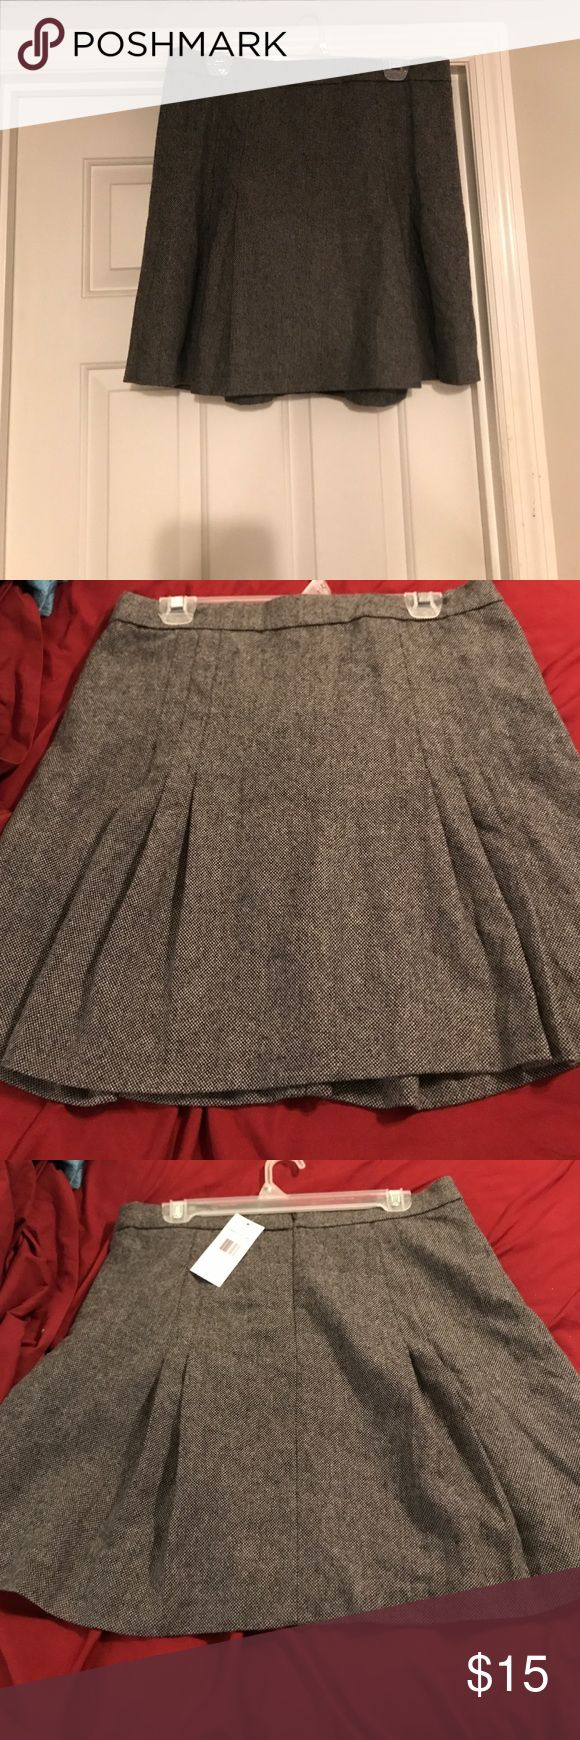 Size 10 Tweed Tommy Hilfiger skirt. Size 10. NWT. Hidden zipper in back. 3 pleats on each size of the skirt including the back ( see picture) Tommy Hilfiger Skirts Mini